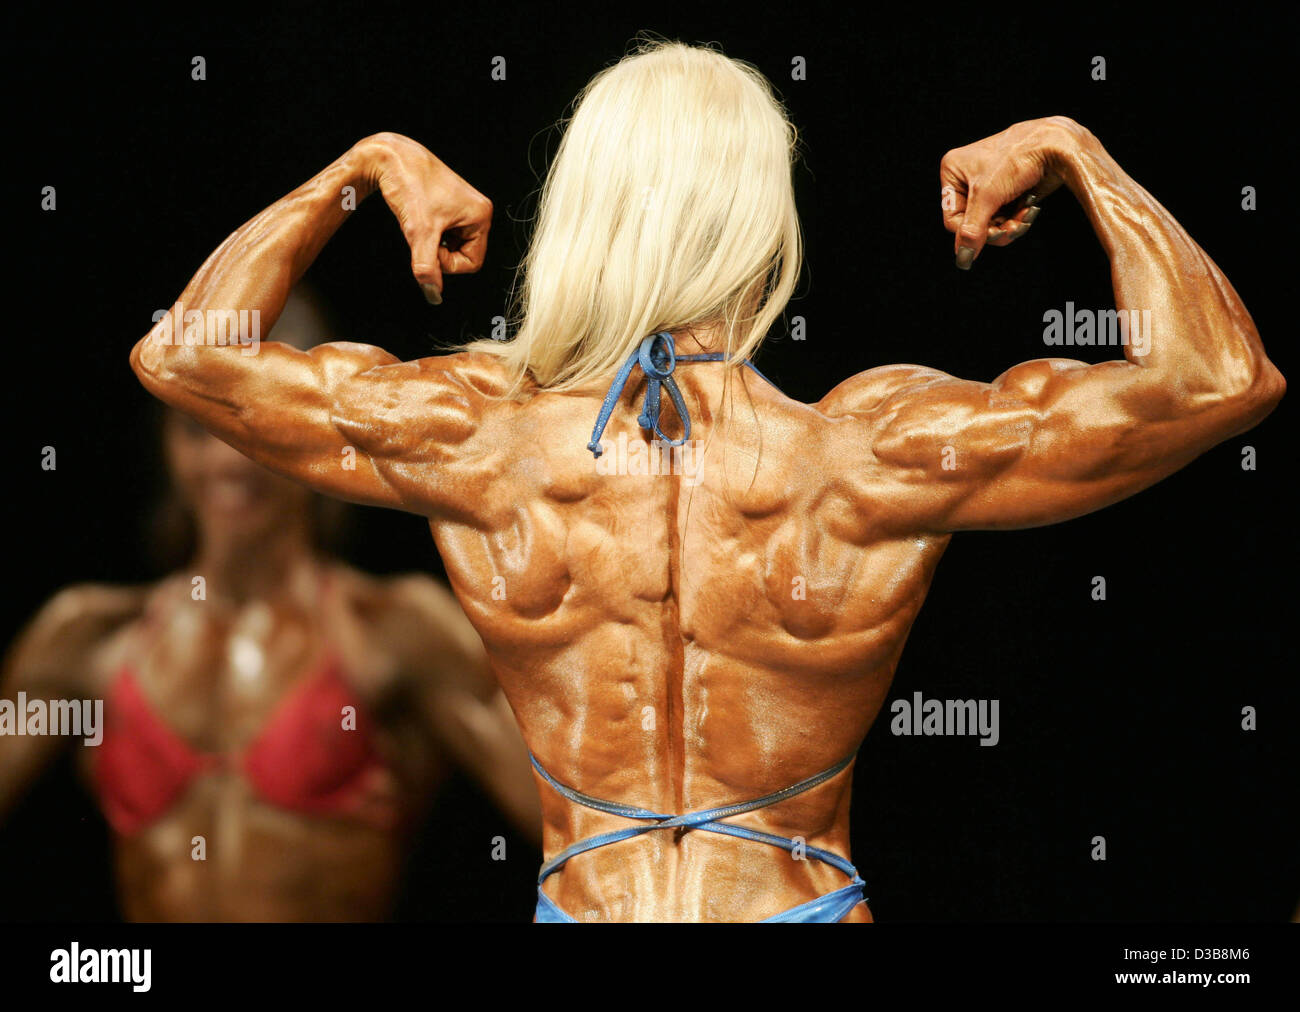 (dpa) - Female participants in the heavyweight competition ...